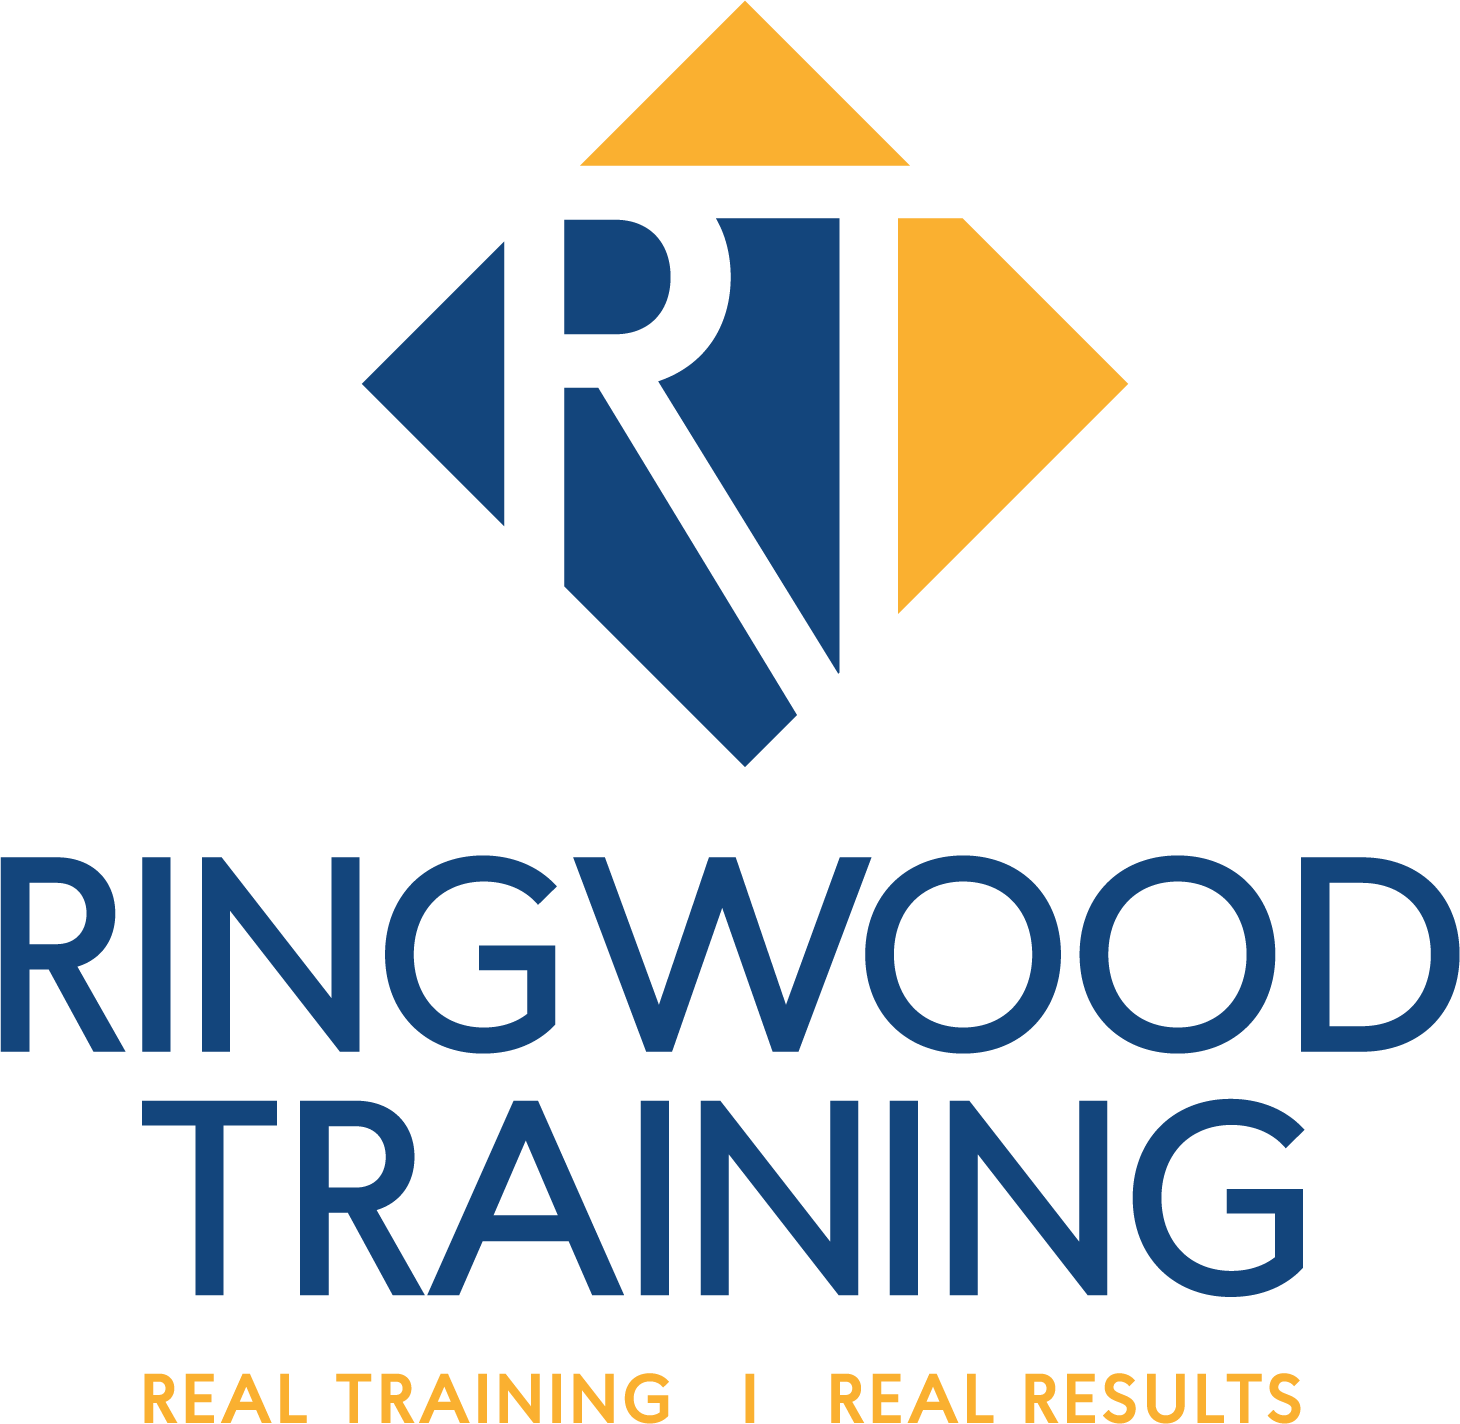 Automotive - Ringwood Training - RT